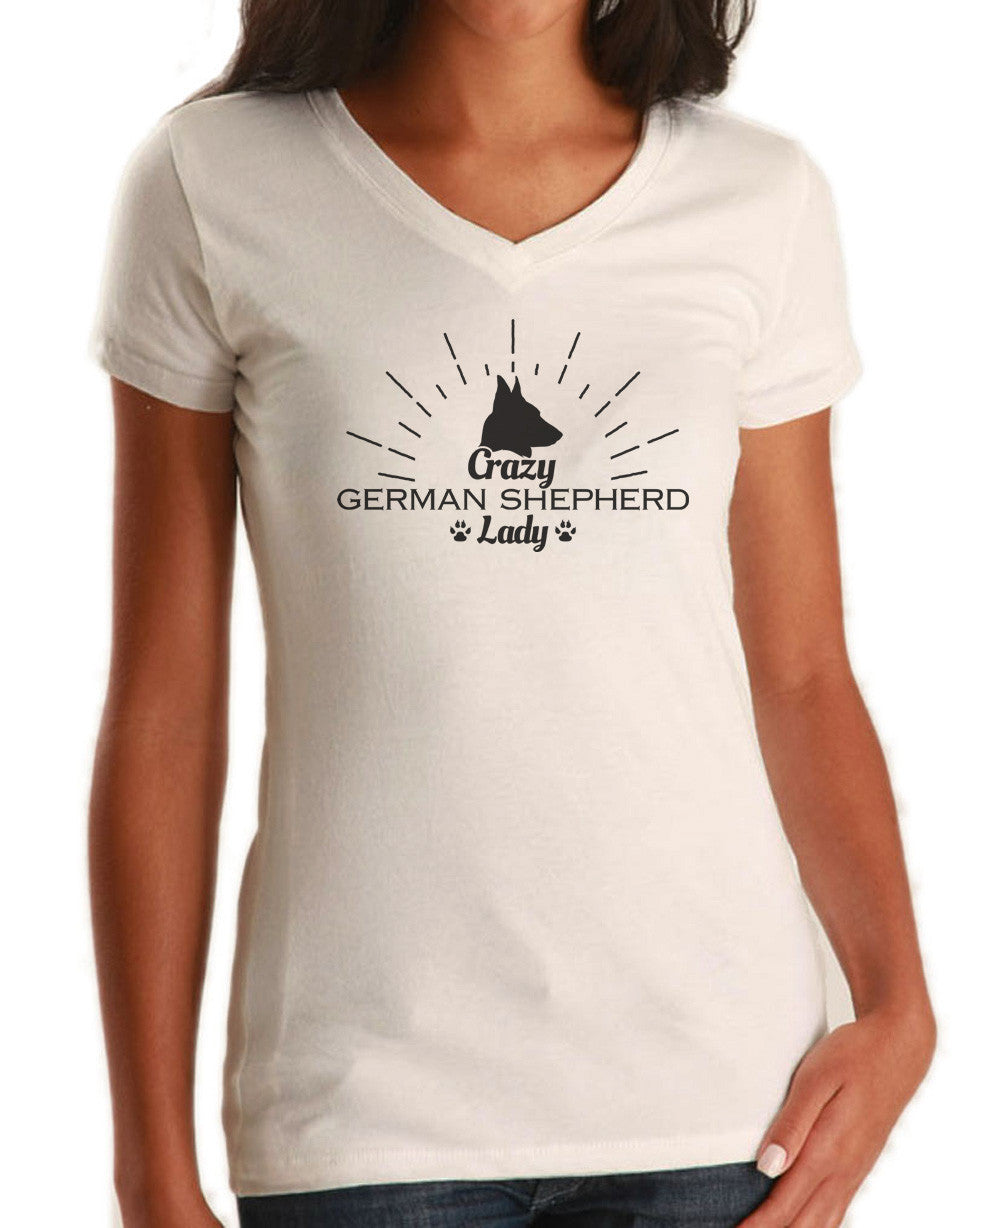 Women's Crazy German Shepherd Lady Vneck T-Shirt - Juniors Fit